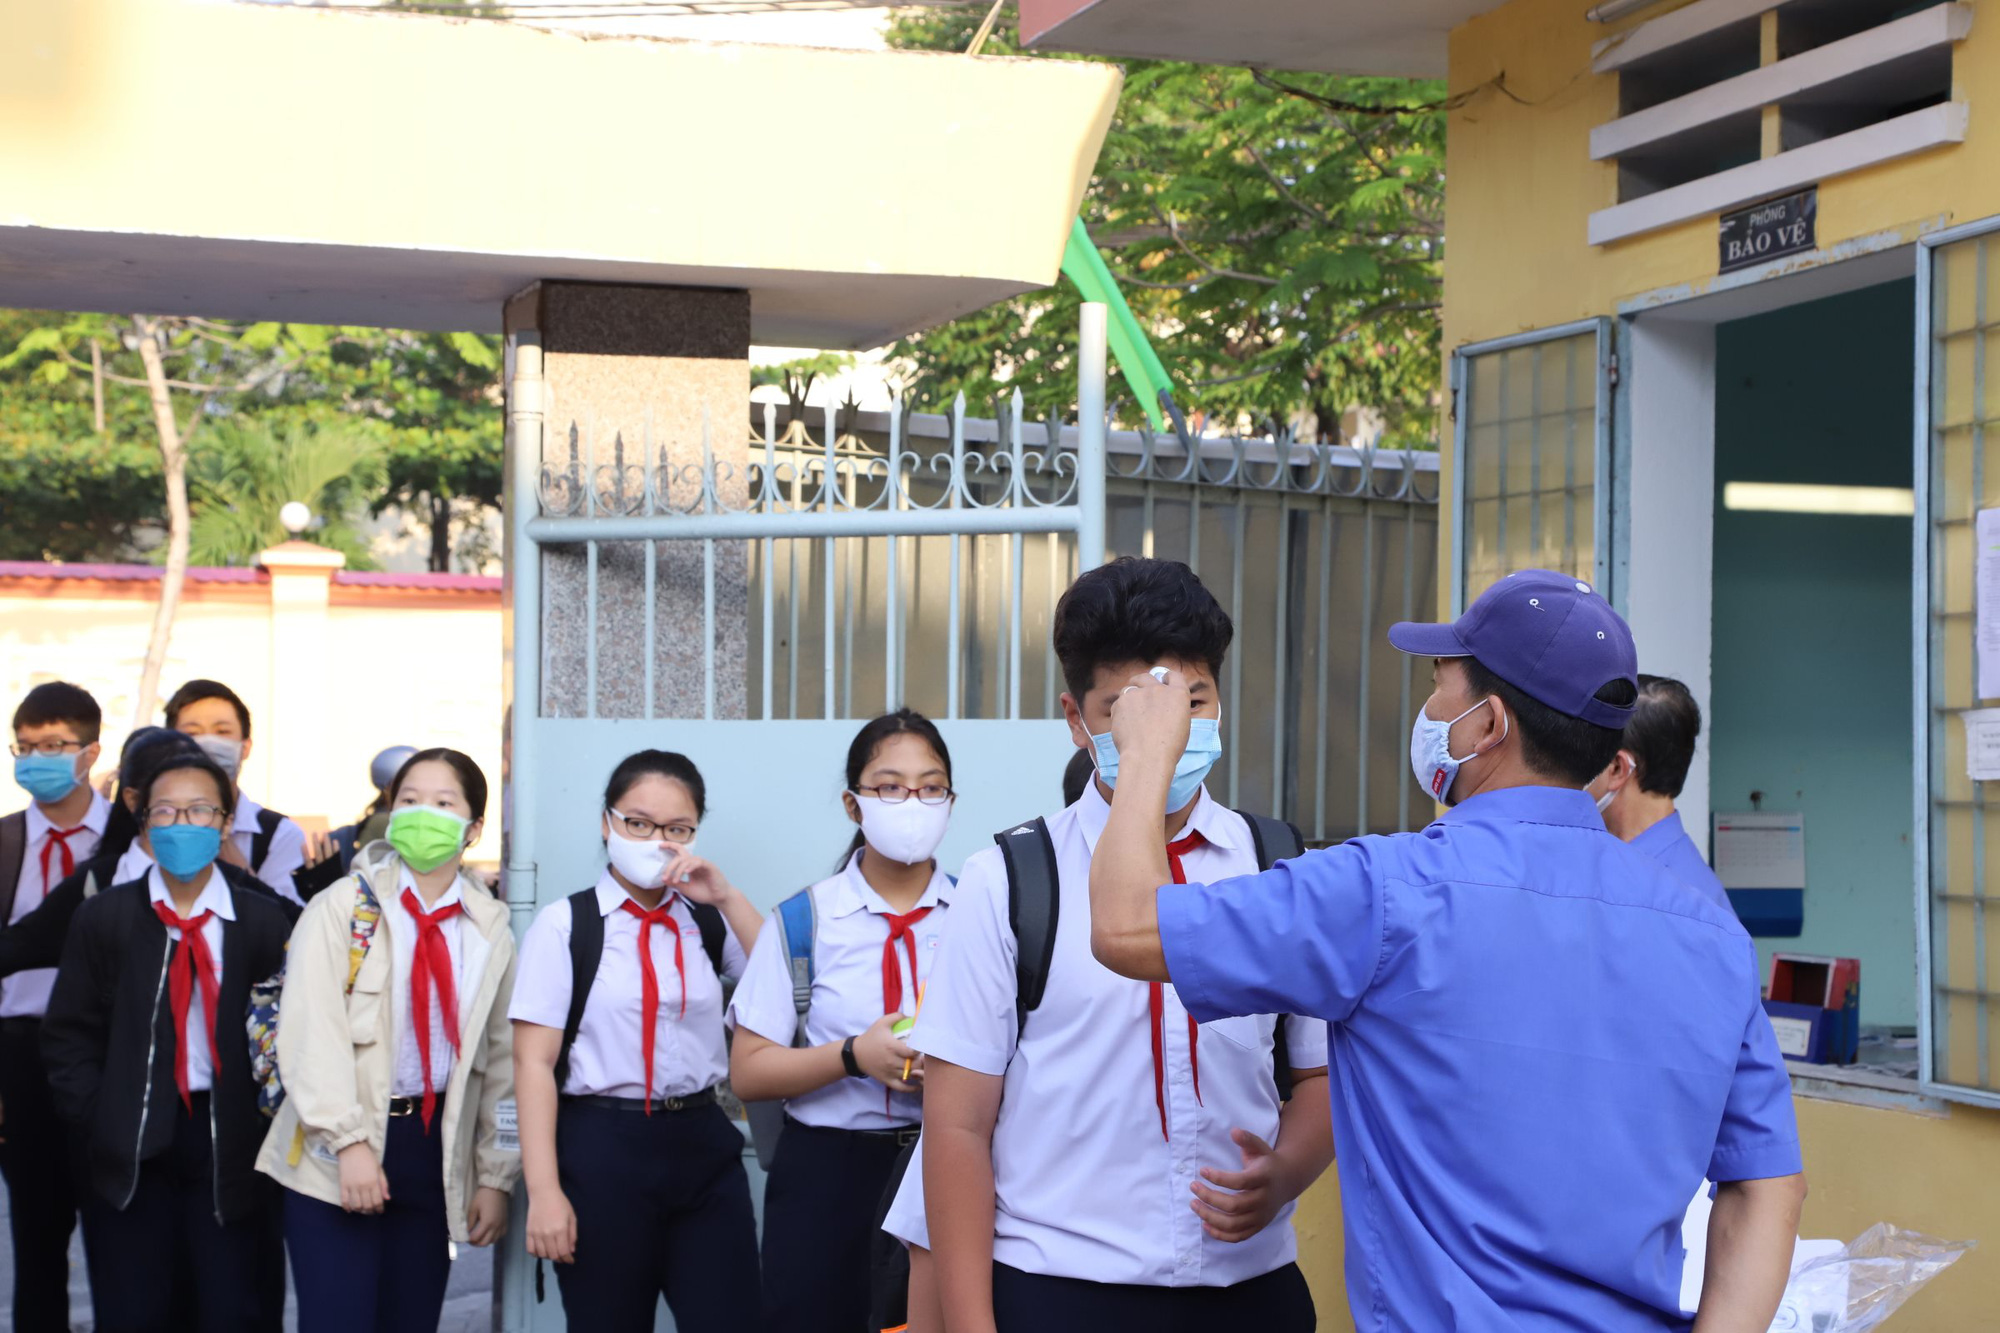 Students have their body temperature measured before entering of Tay Son High School in Da Nang City on May 4, 2020. Photo: Doan Cuong / Tuoi Tre